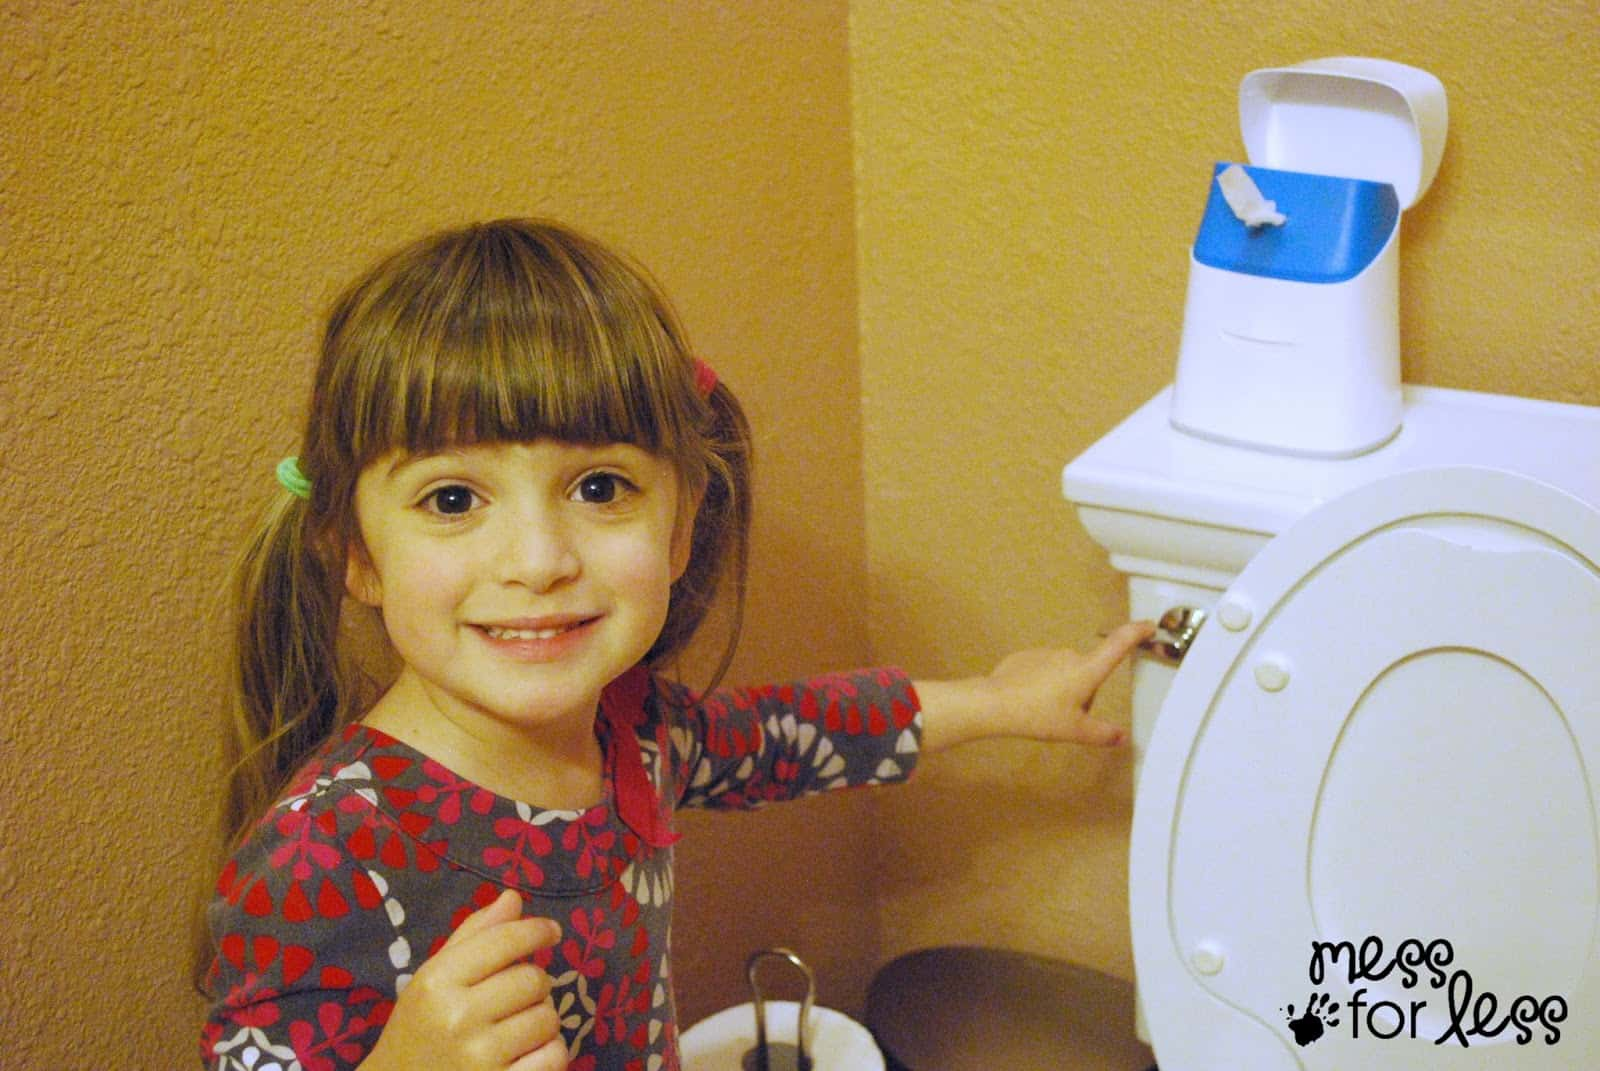 Using the potty #CtnlCareRoutine #PMedia #sponsored